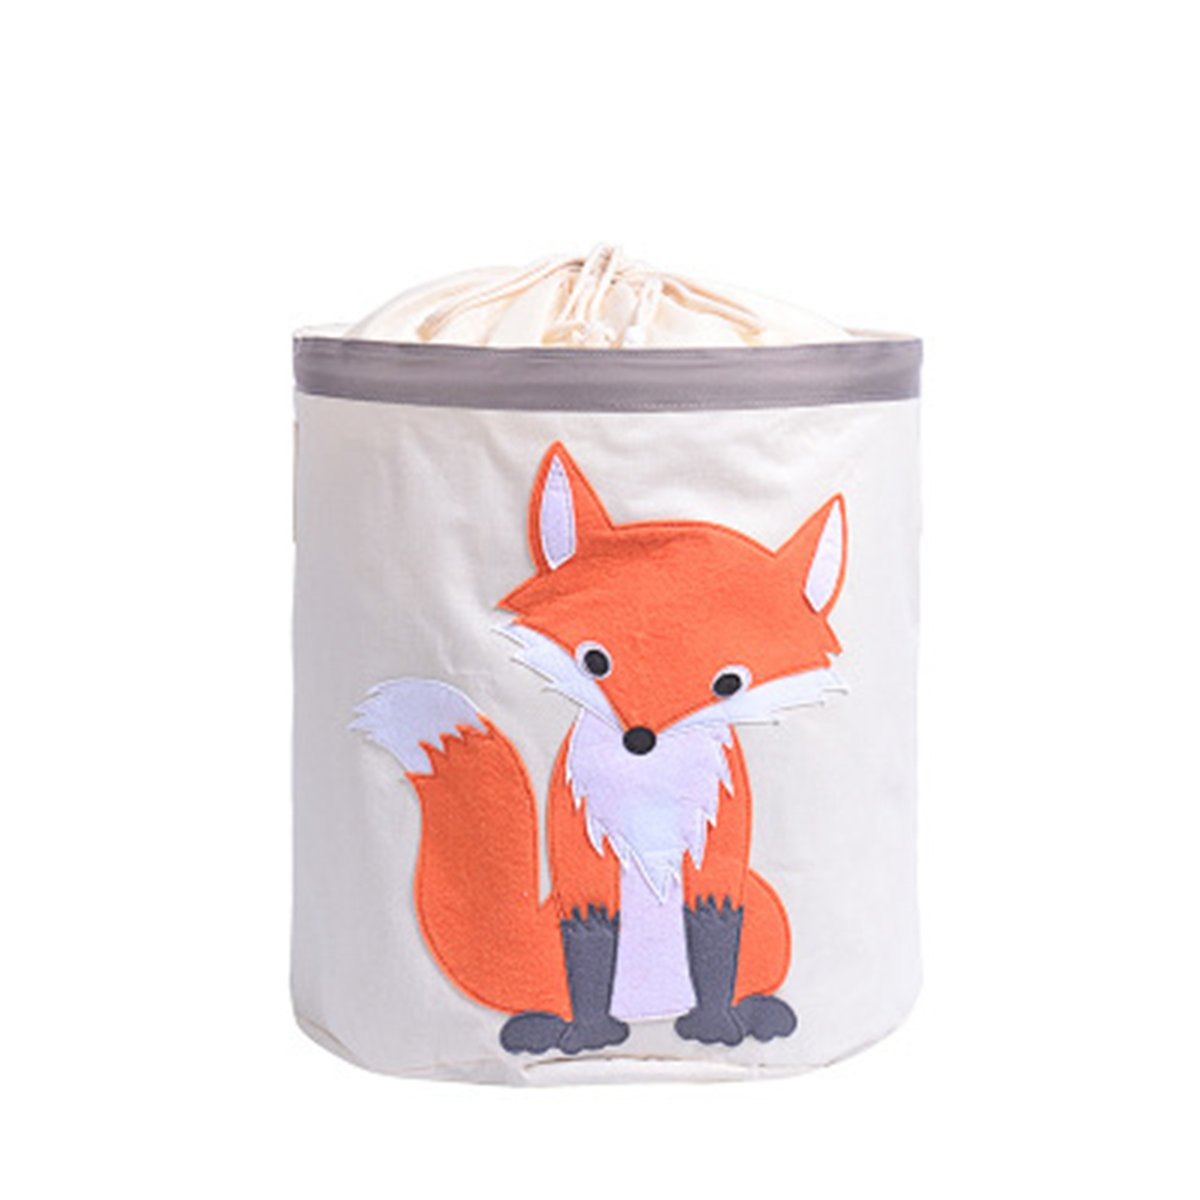 Large Oversized Waterproof Coating Ramie Cotton Fabric Folding Laundry Hamper Bucket Cylindric Burlap Storage Basket,Toy Organizer,Beam Laundry Bag